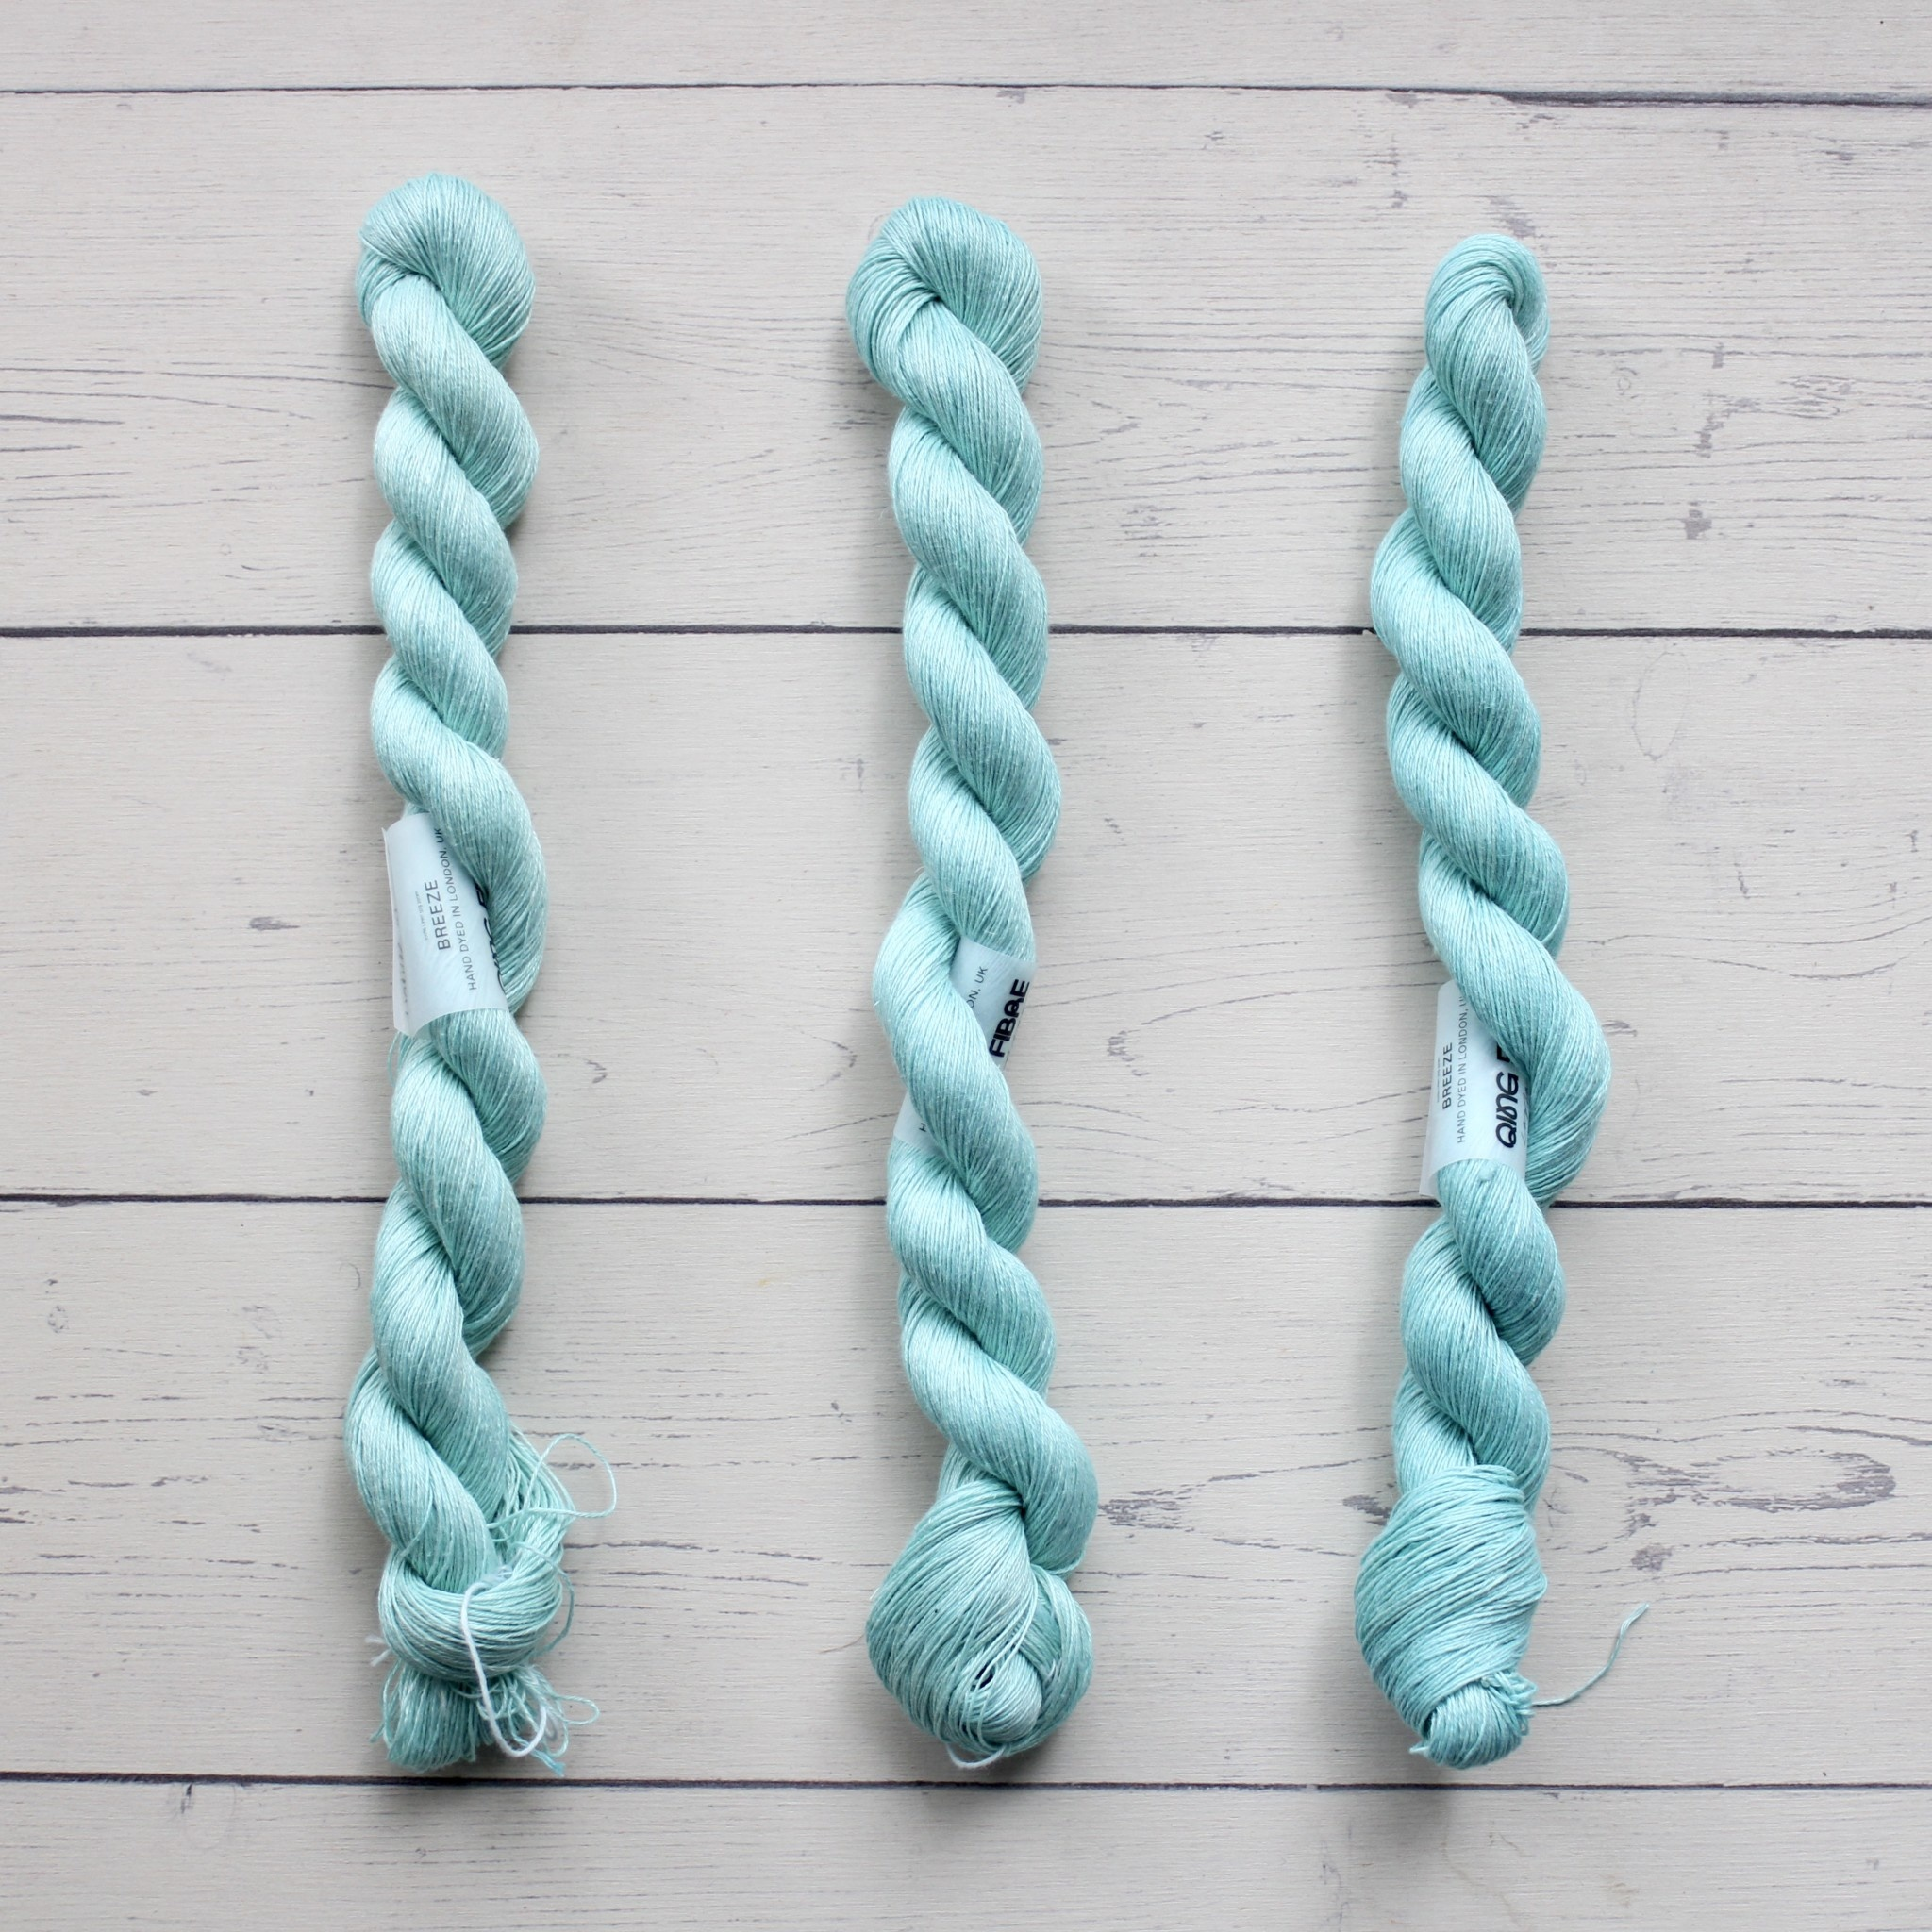 Qing Fibre BREEZE - ROBIN EGG BLUE